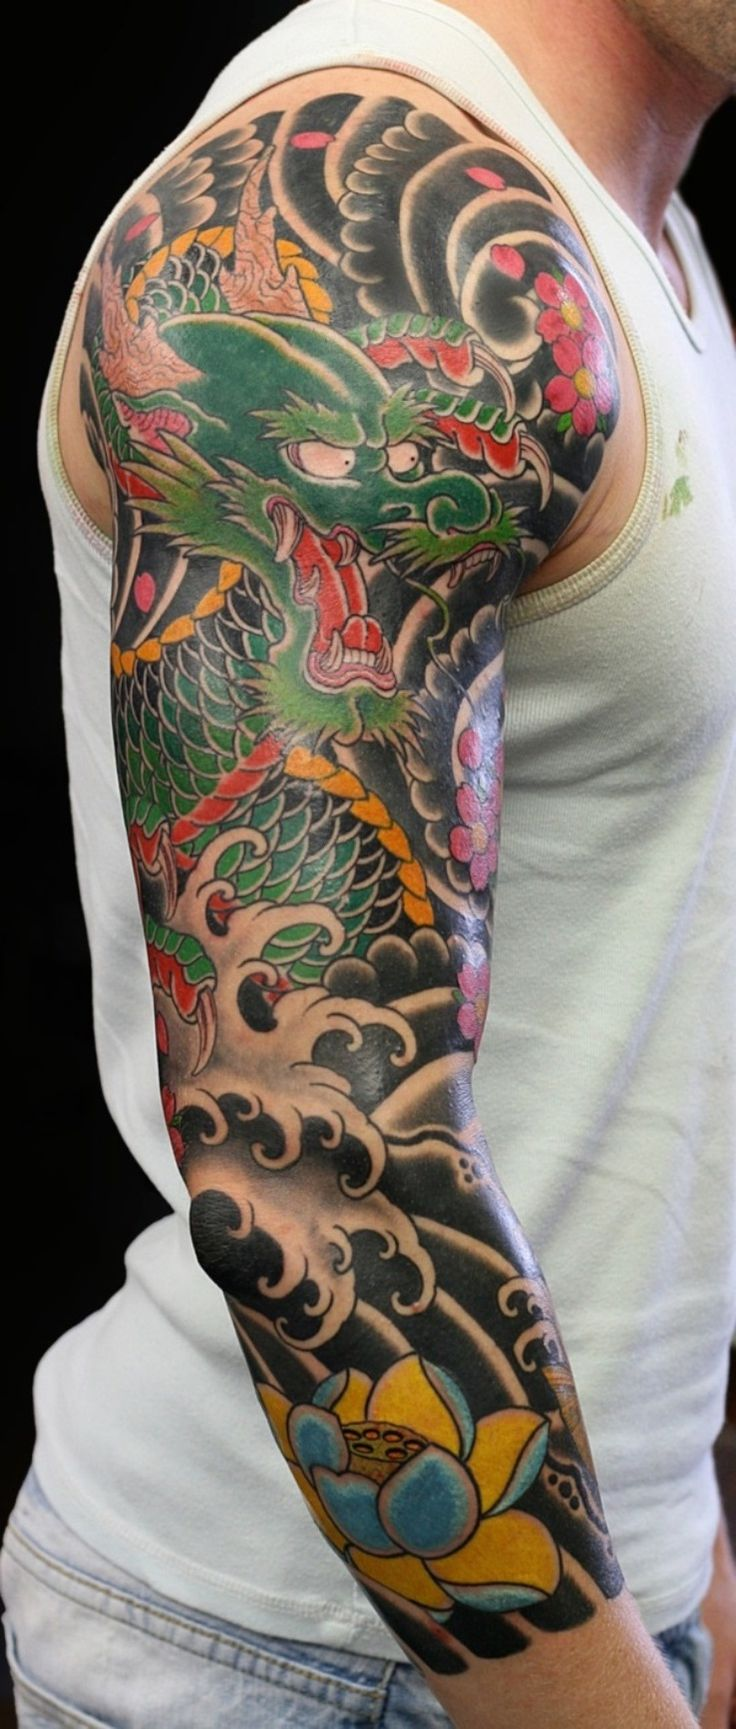 Japanese sleeve tattoos designs and ideas - Japanese Sleeve Tattoo Pictures